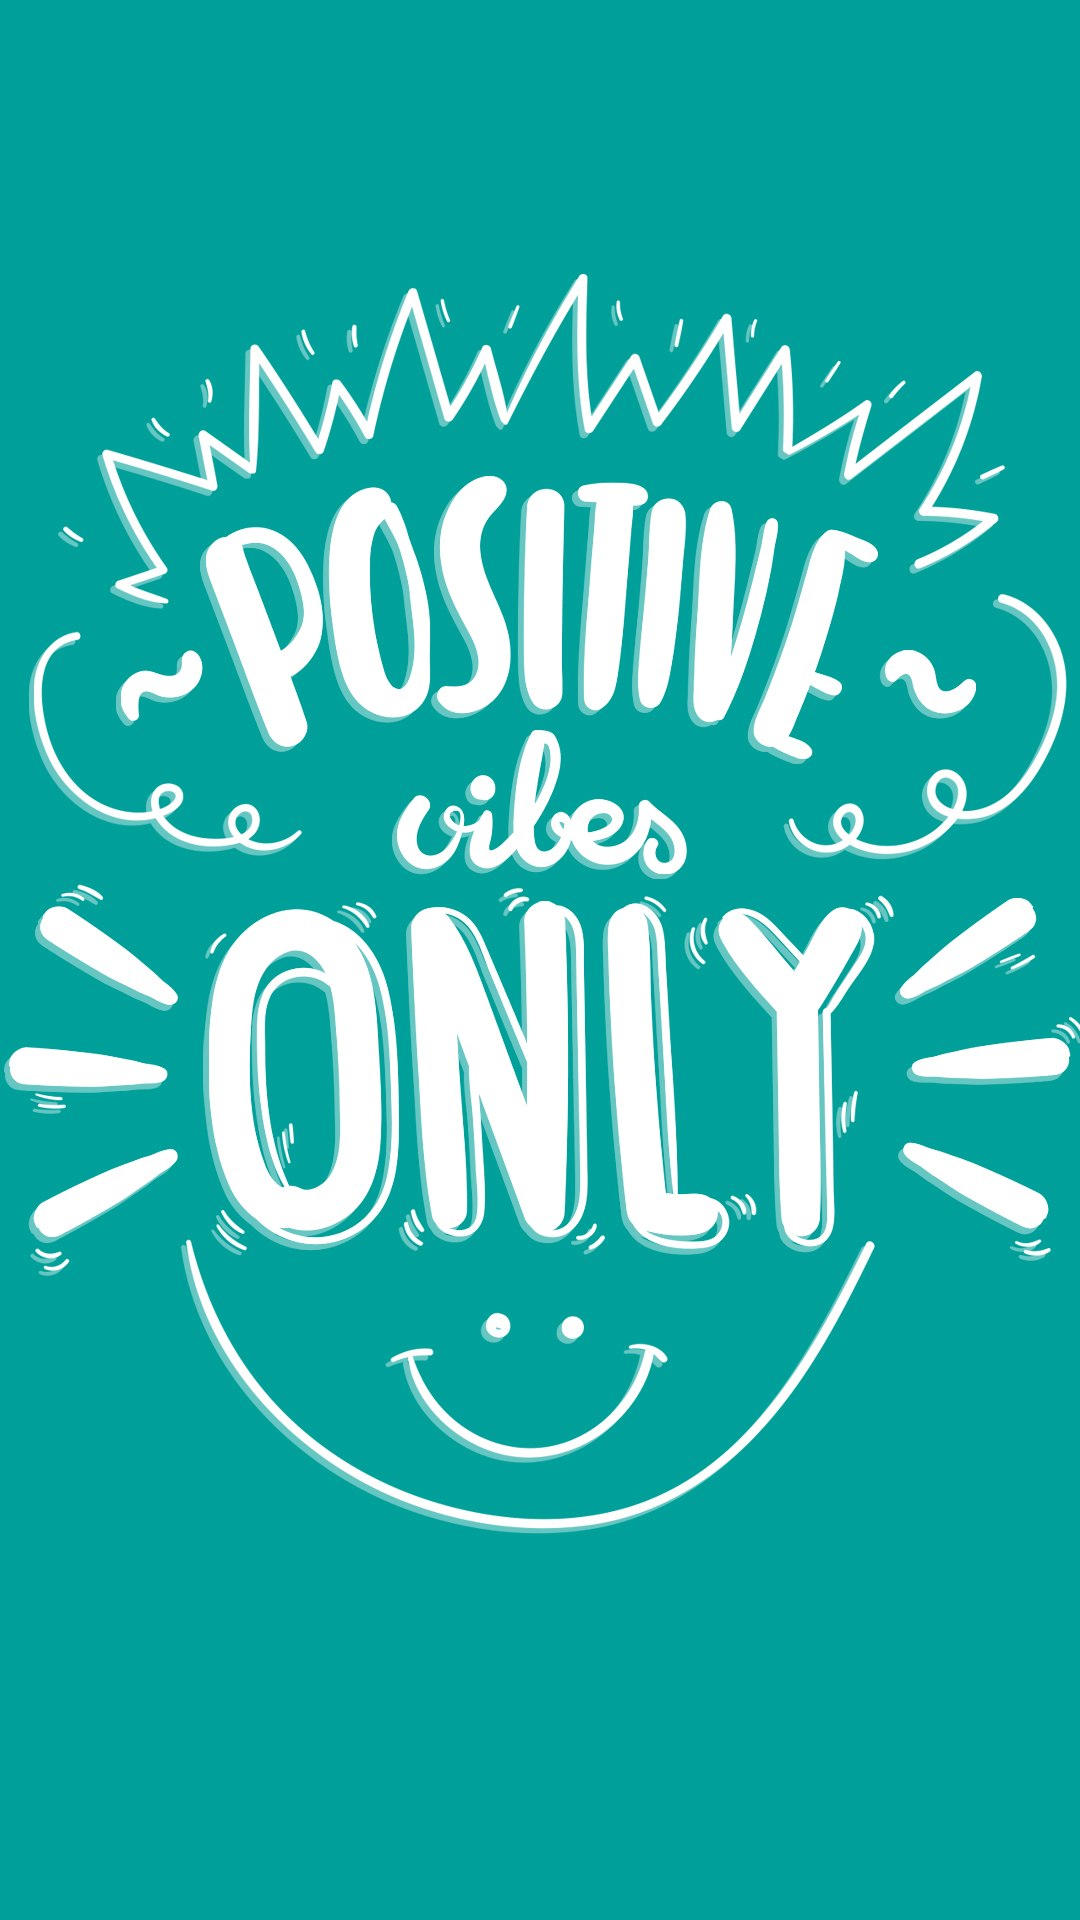 Positive Attitude Quotes Wallpapers Positive Vibes Hd Wallpaper For Your Mobile Phone